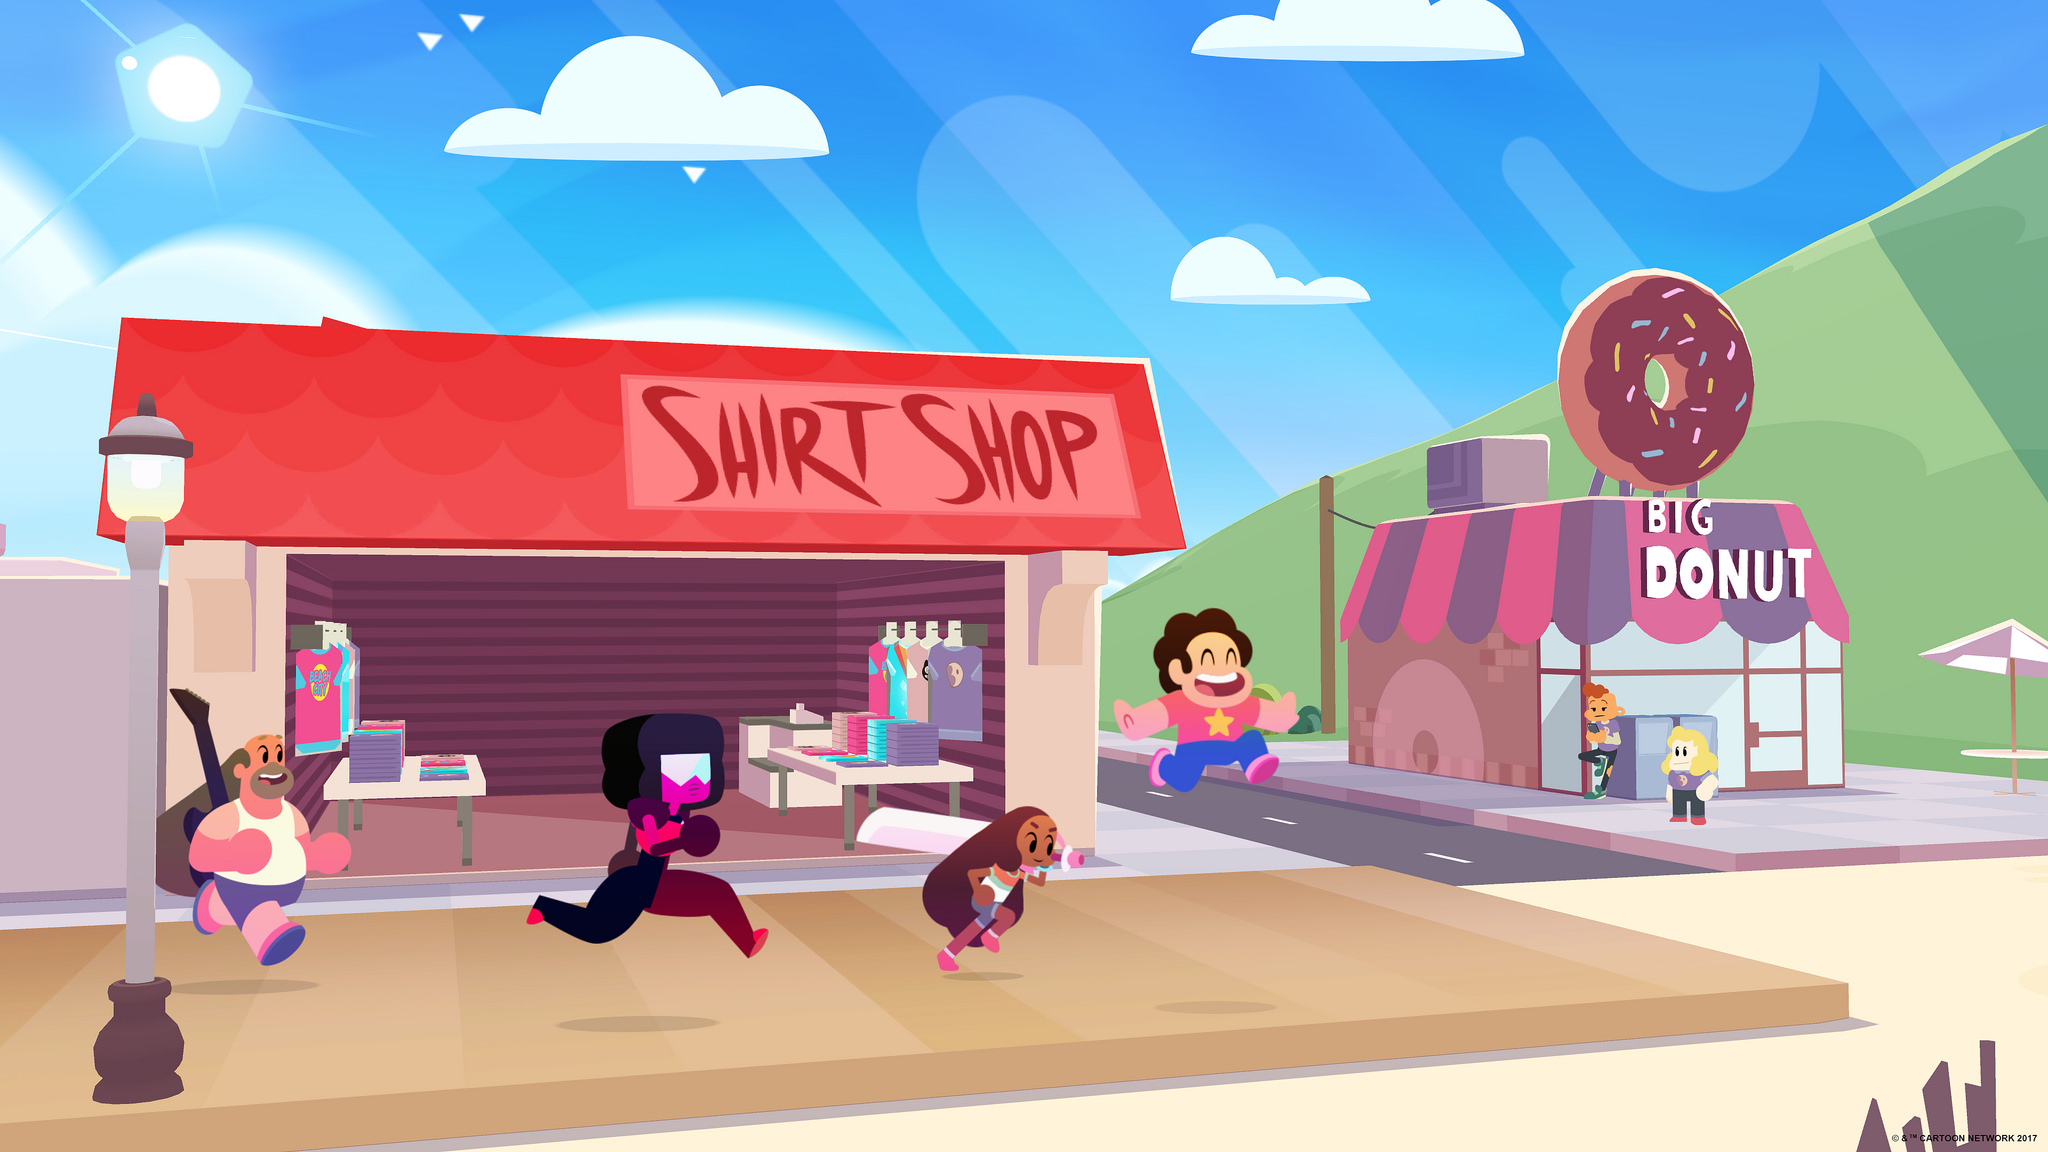 Steven Universe is coming to consoles with original RPG